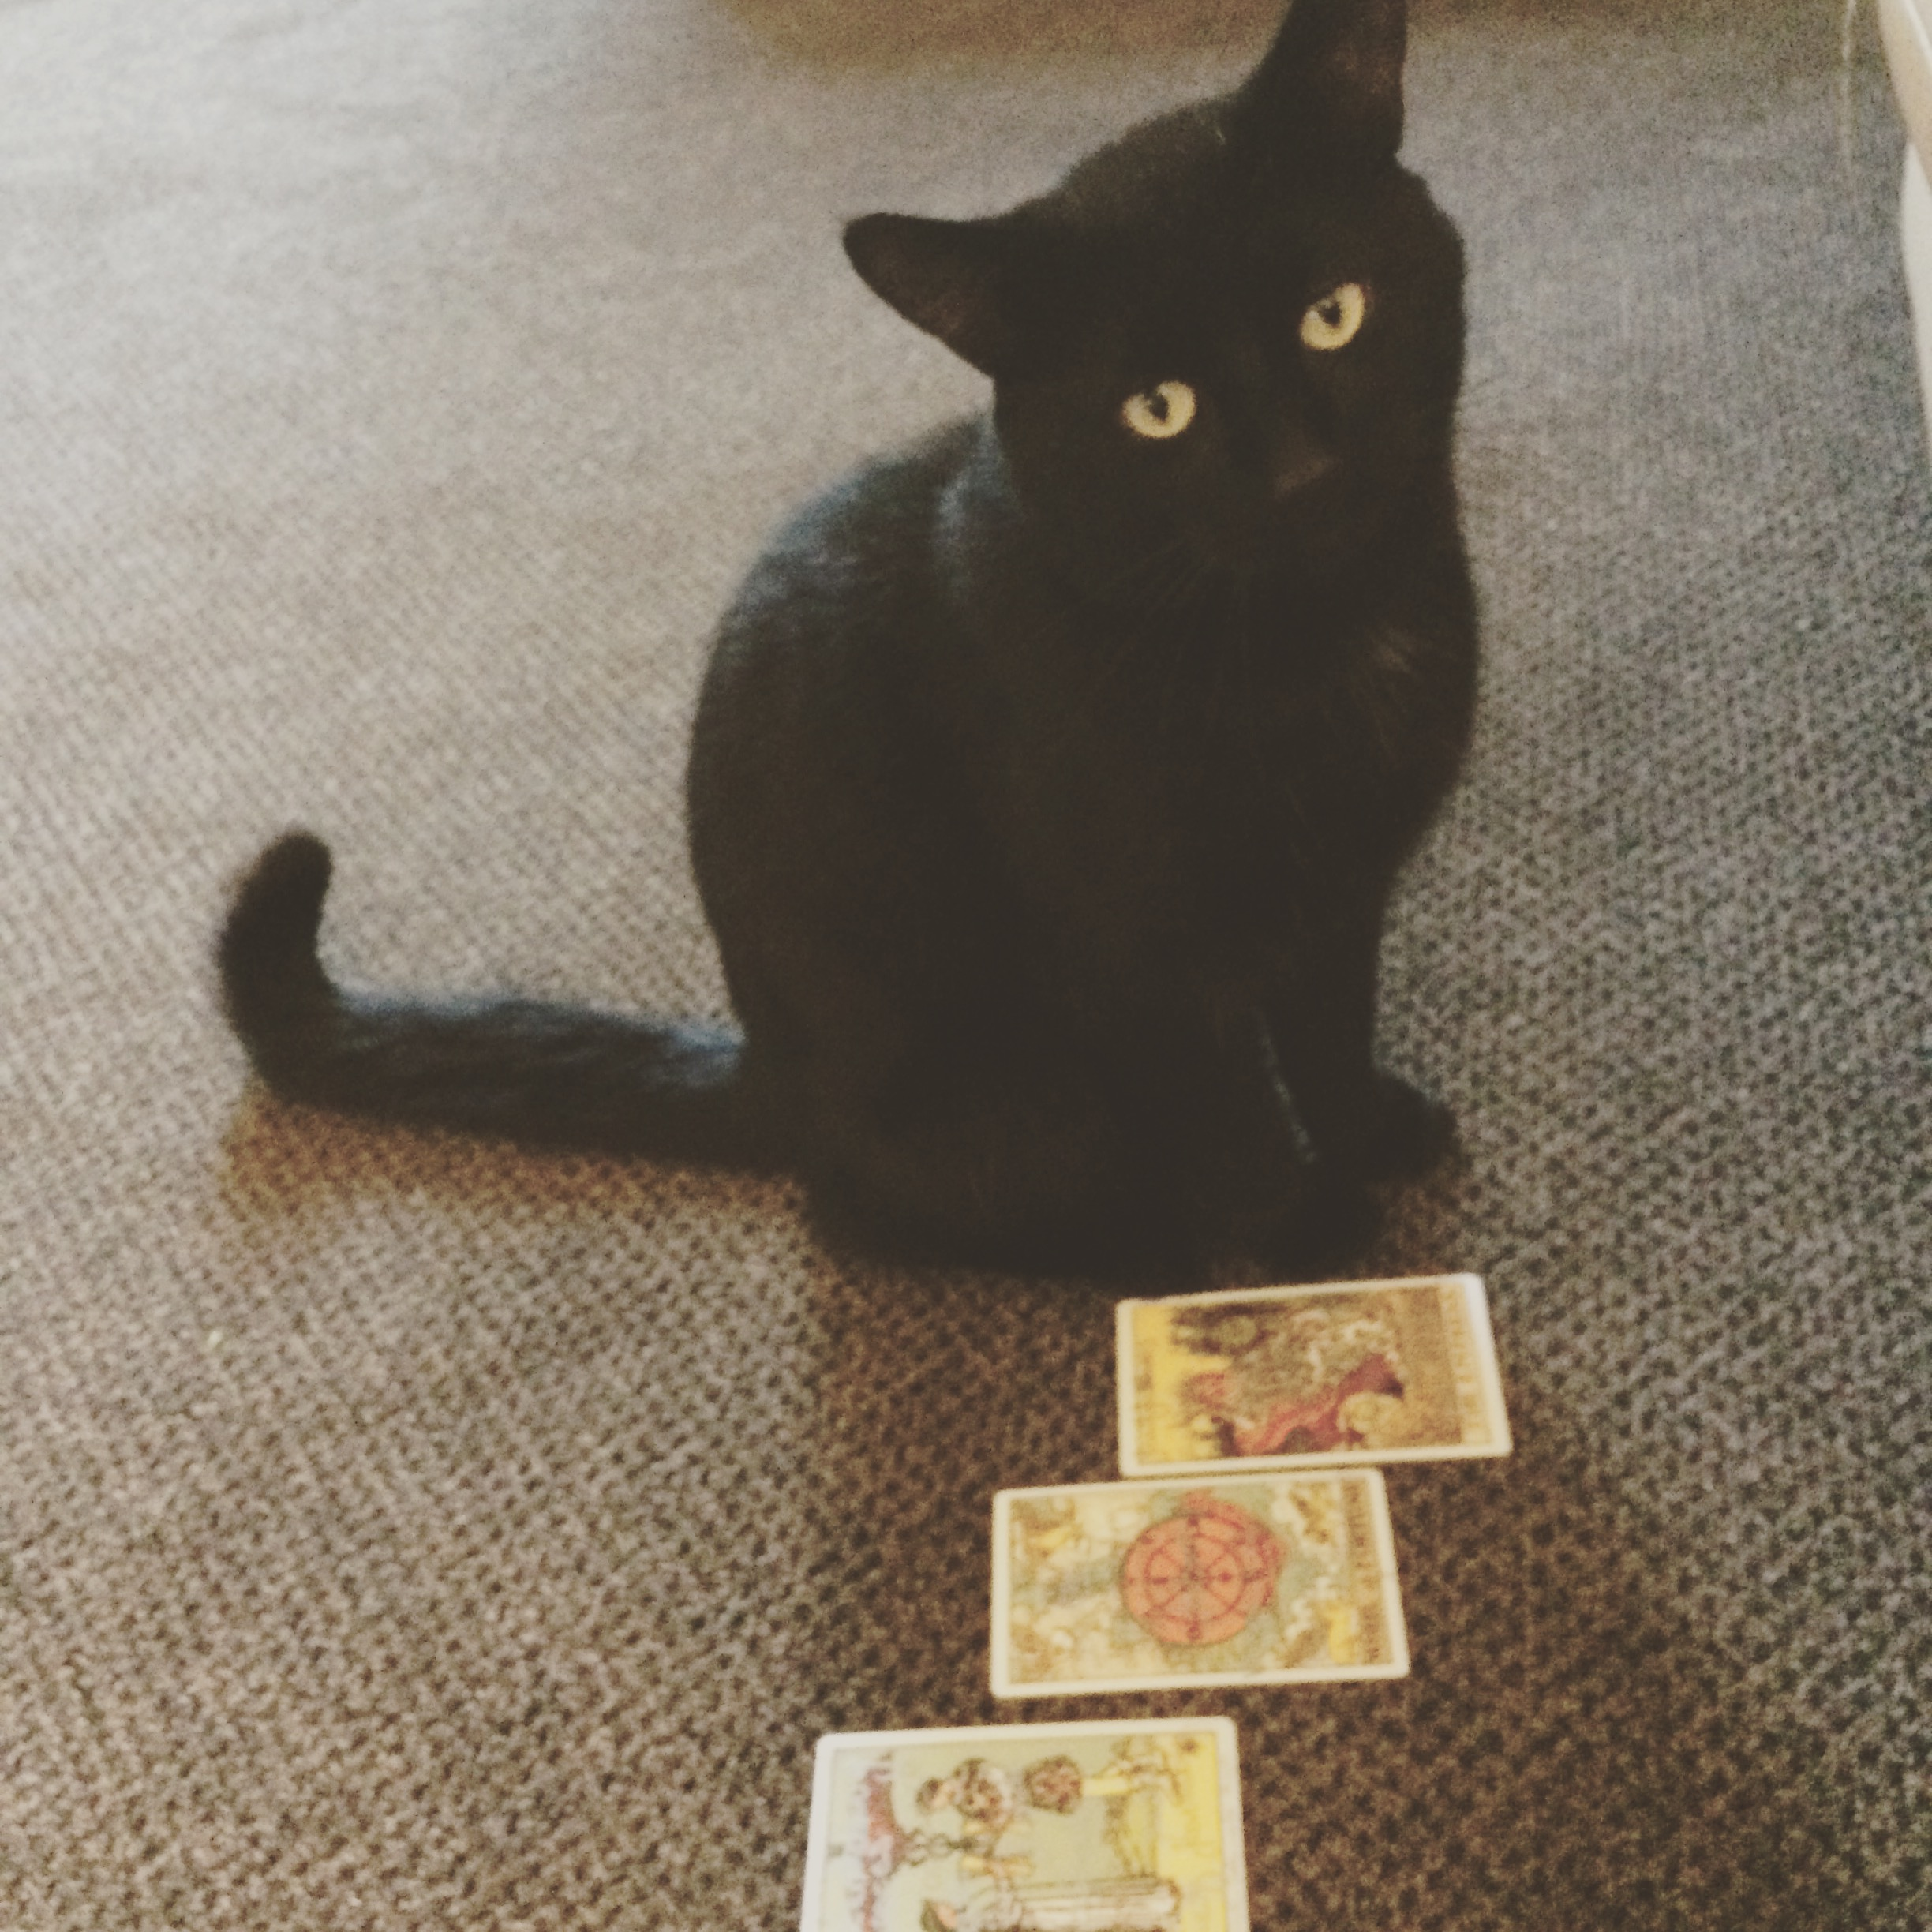 Black cats can be a sign of good or bad luck depending on how you view them (Tarot cards not always included!)